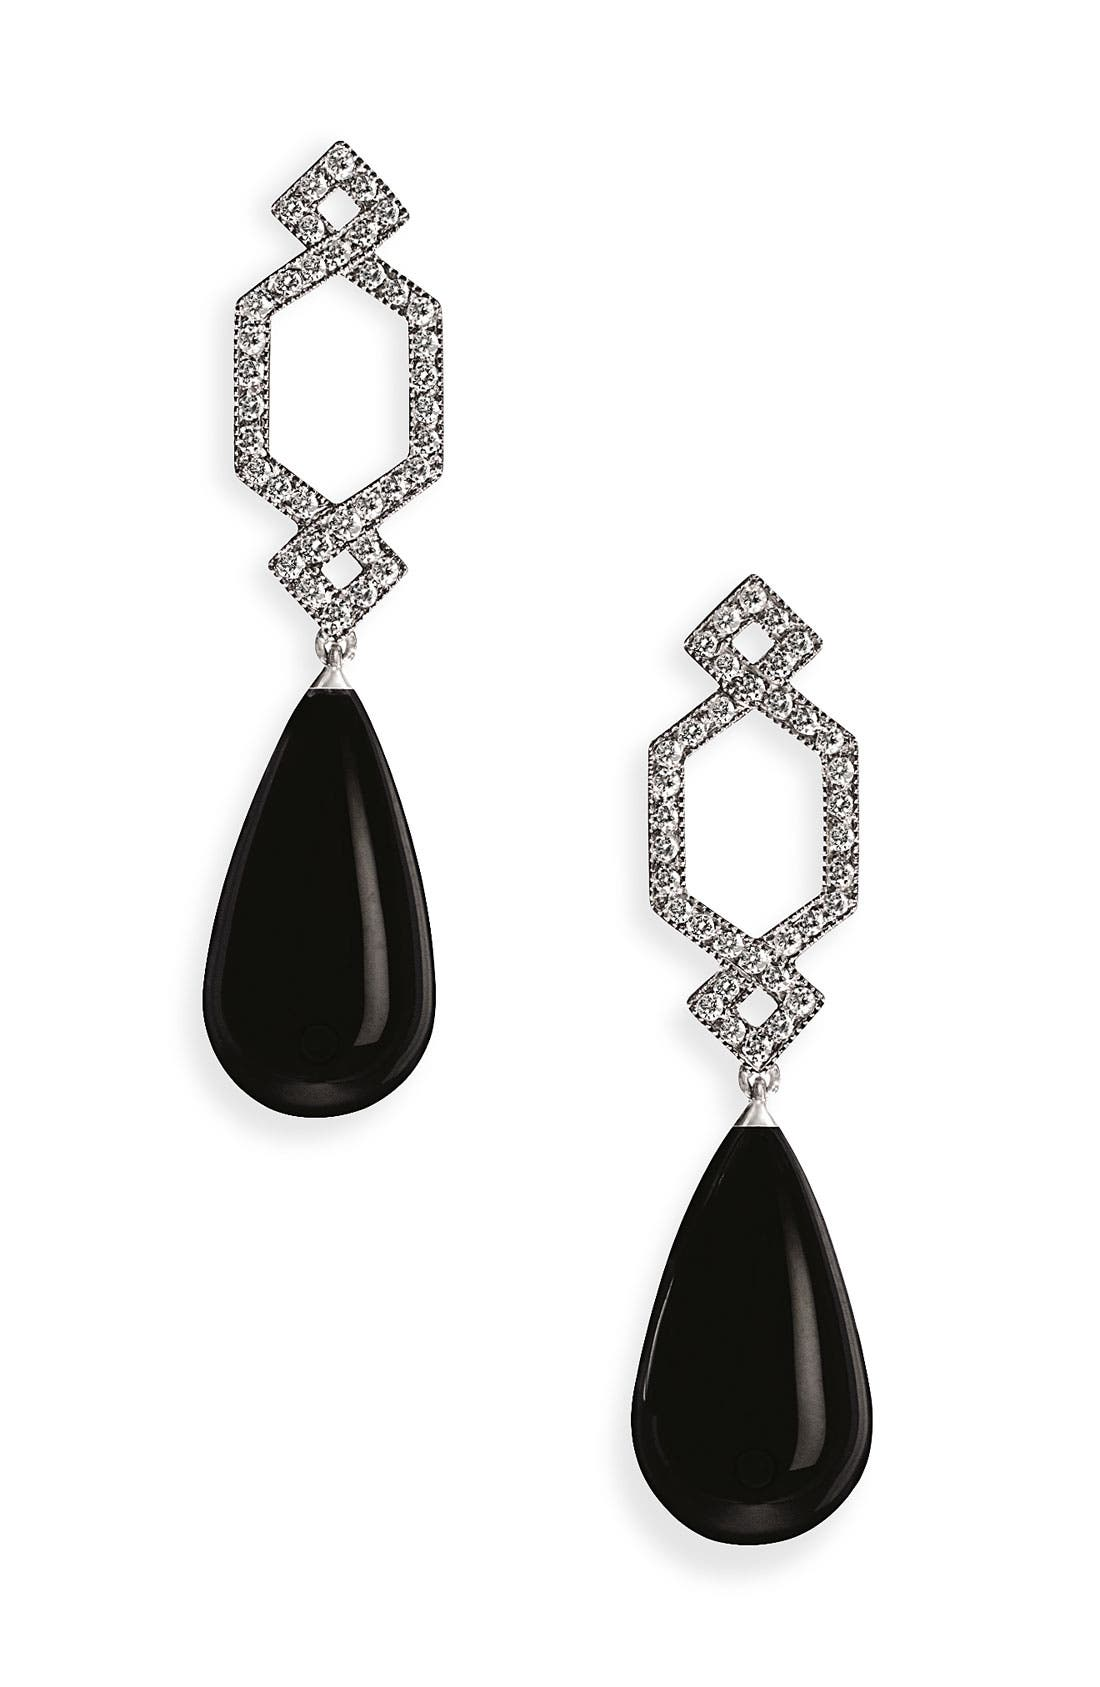 Main Image - Ivanka Trump 'Black & White' Onyx & Diamond Crossover Earrings